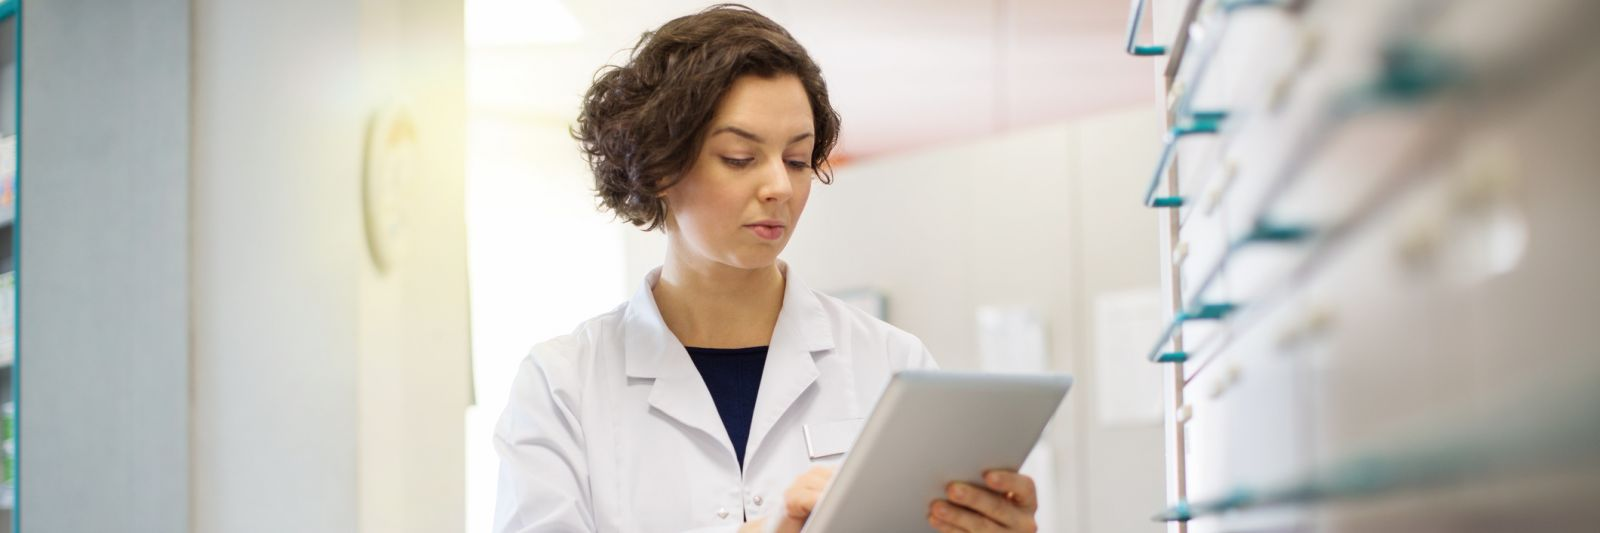 Why Healthcare Supply Chain Management Is Due for an Overhaul